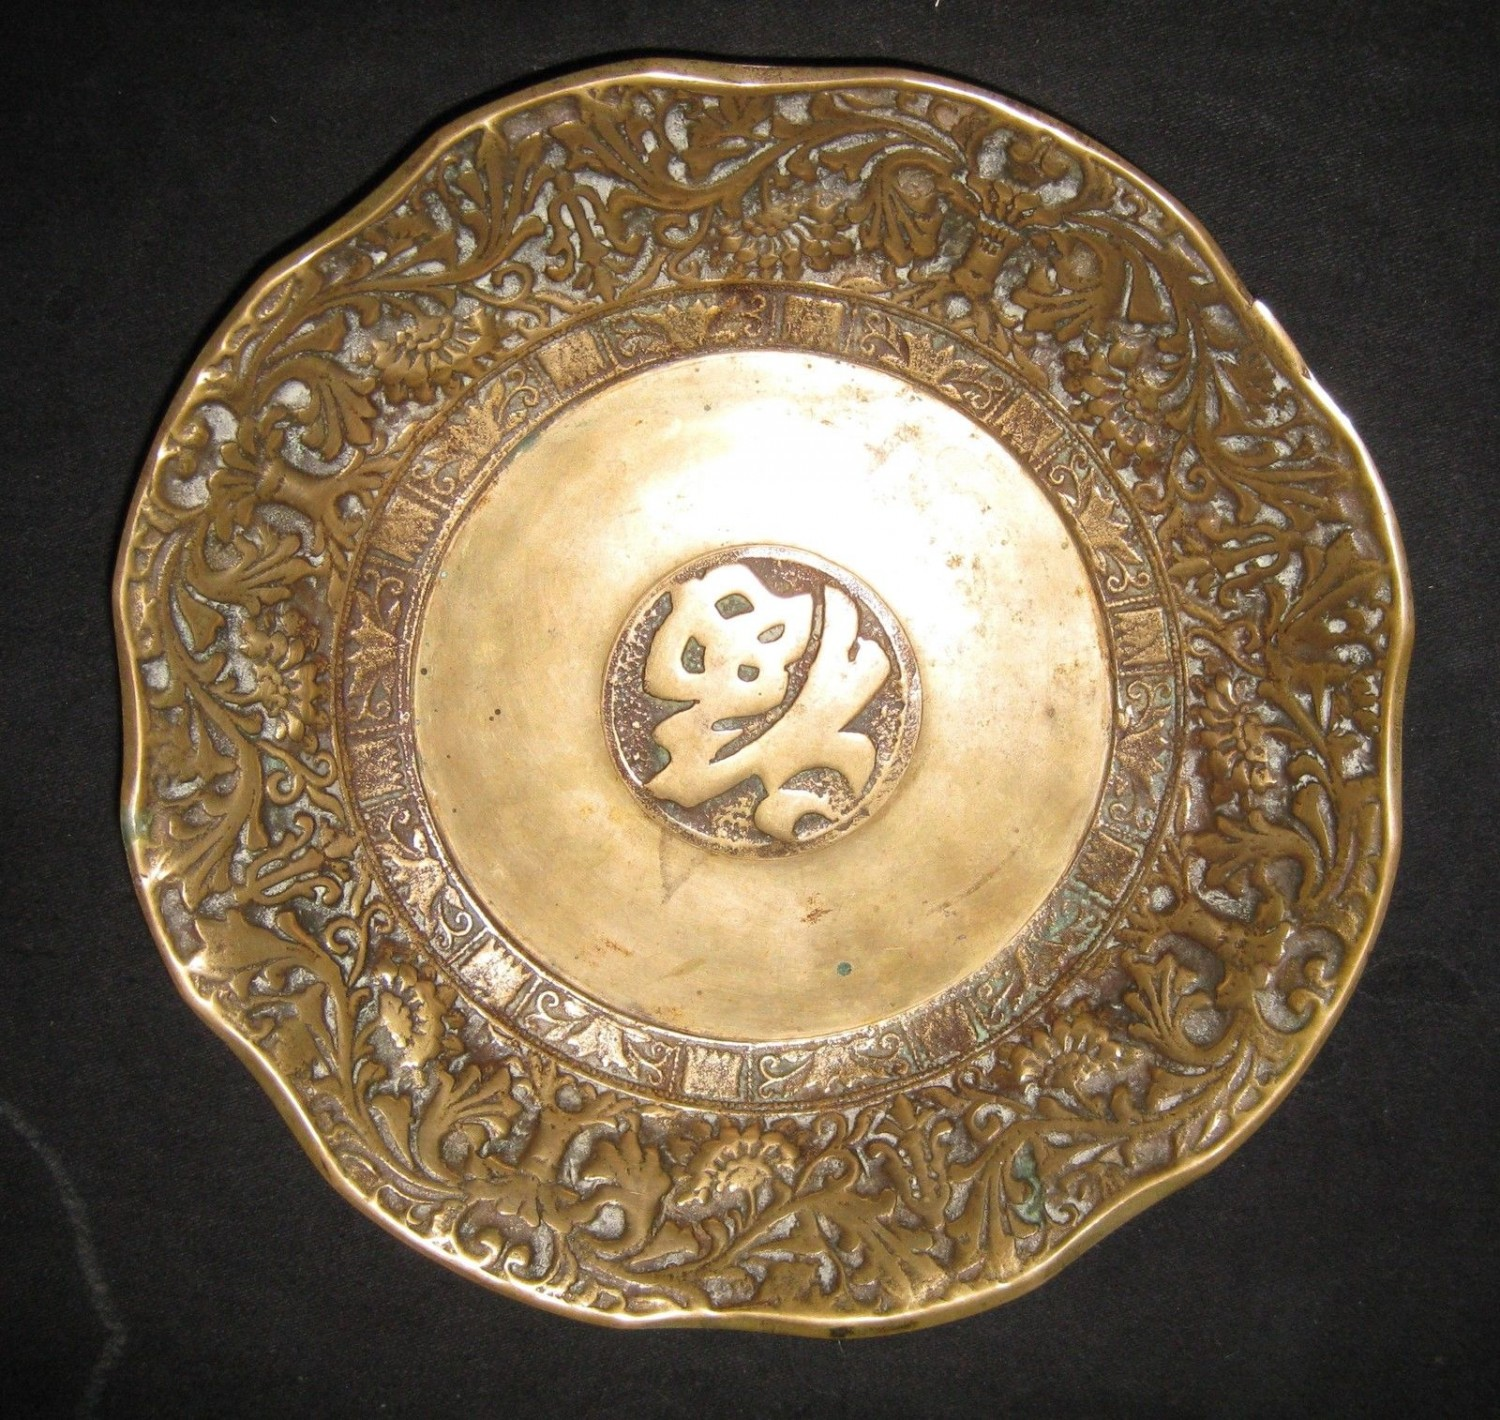 ANTIQUE CHINESE SMALL BRONZE BOWL OR PLATE, NR.